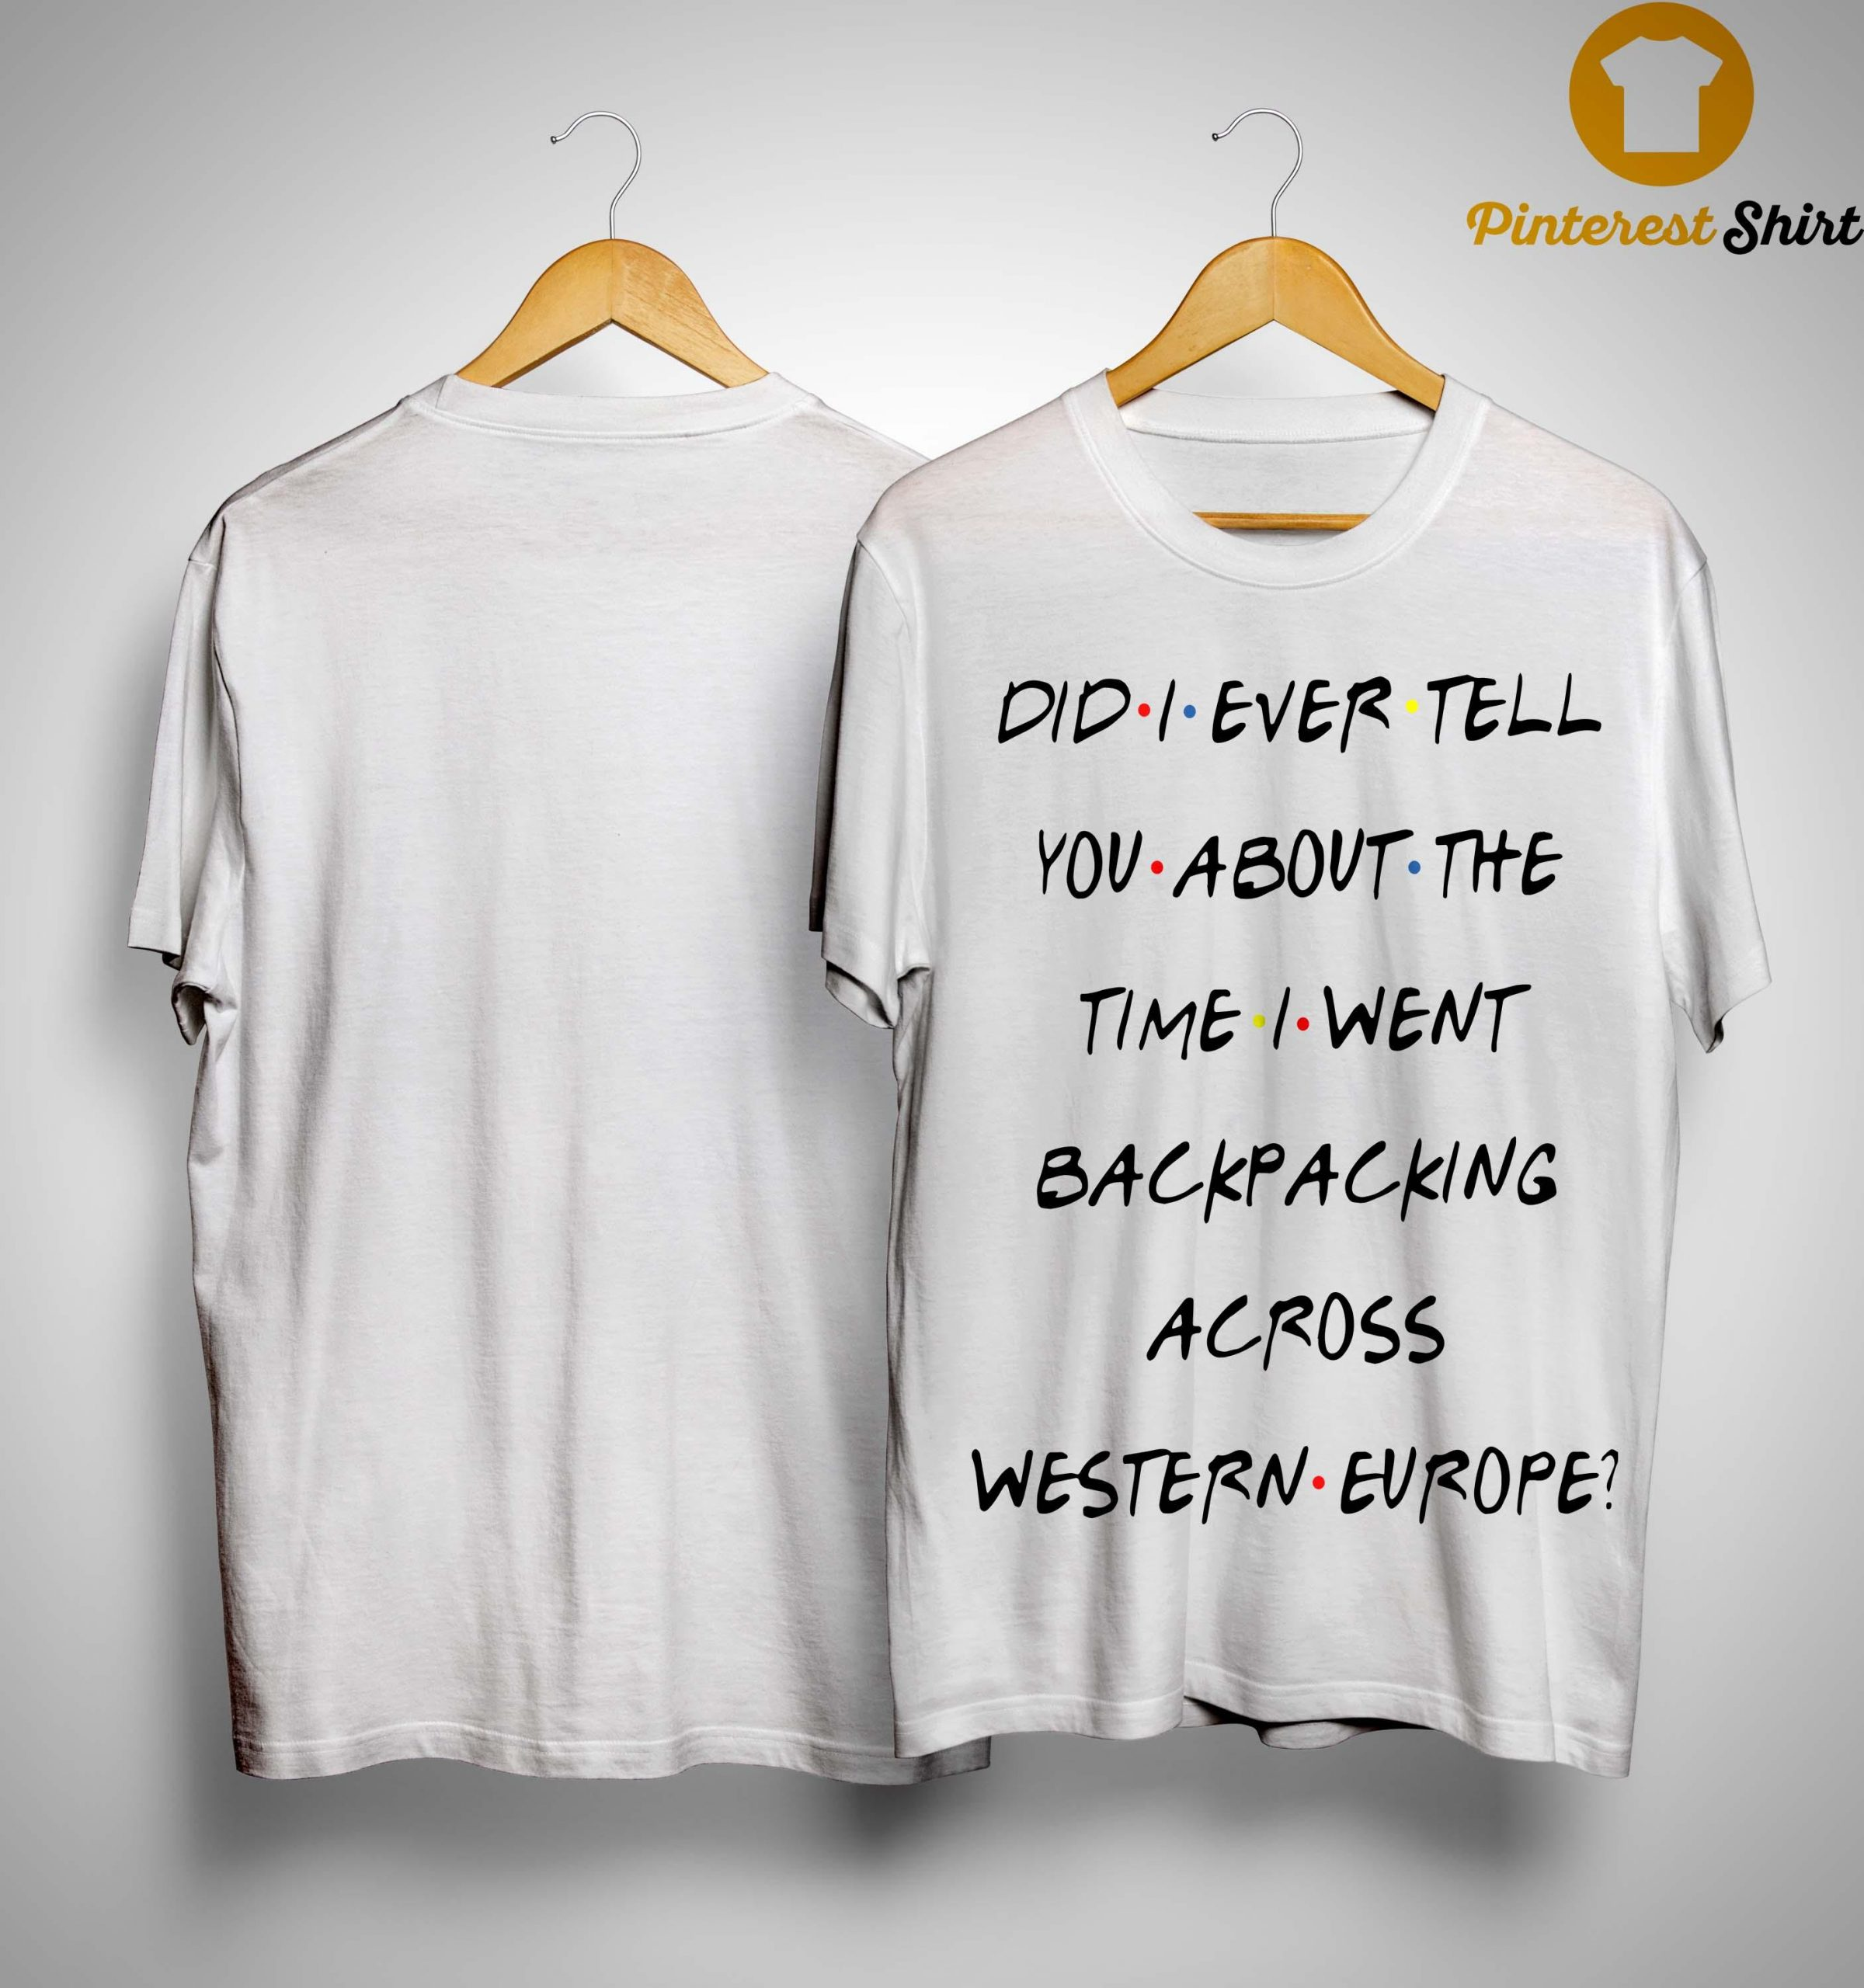 Did I Ever Tell You About The Time I Went Backpacking Across Western Europe Shirt